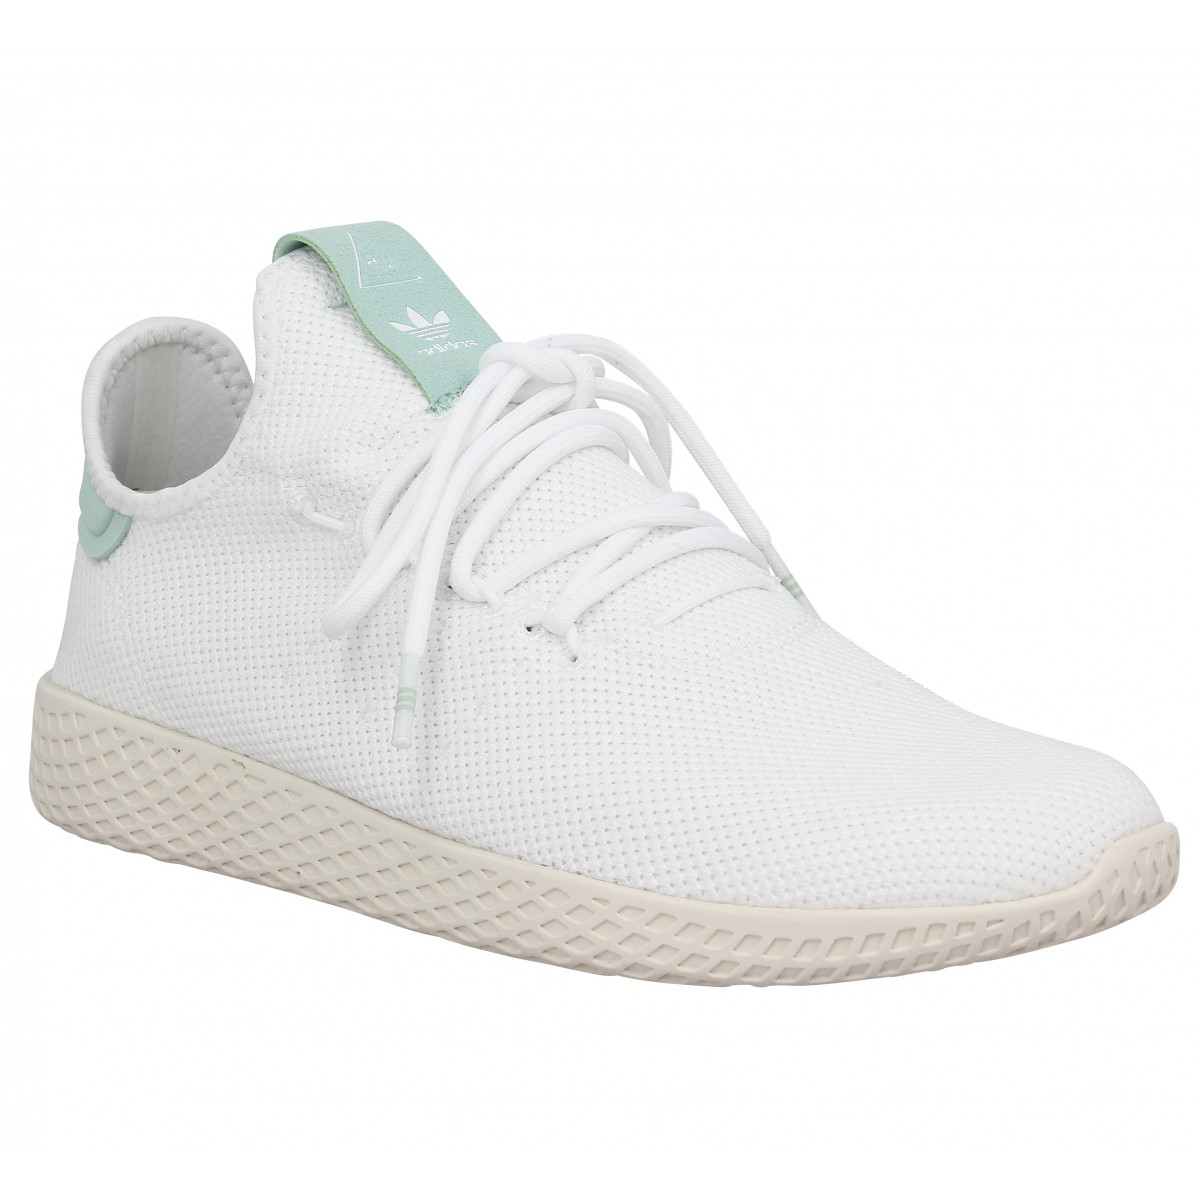 Adidas X Pw Tennis Williams Mesh Blanc Vert Pharrell K3TclF1J